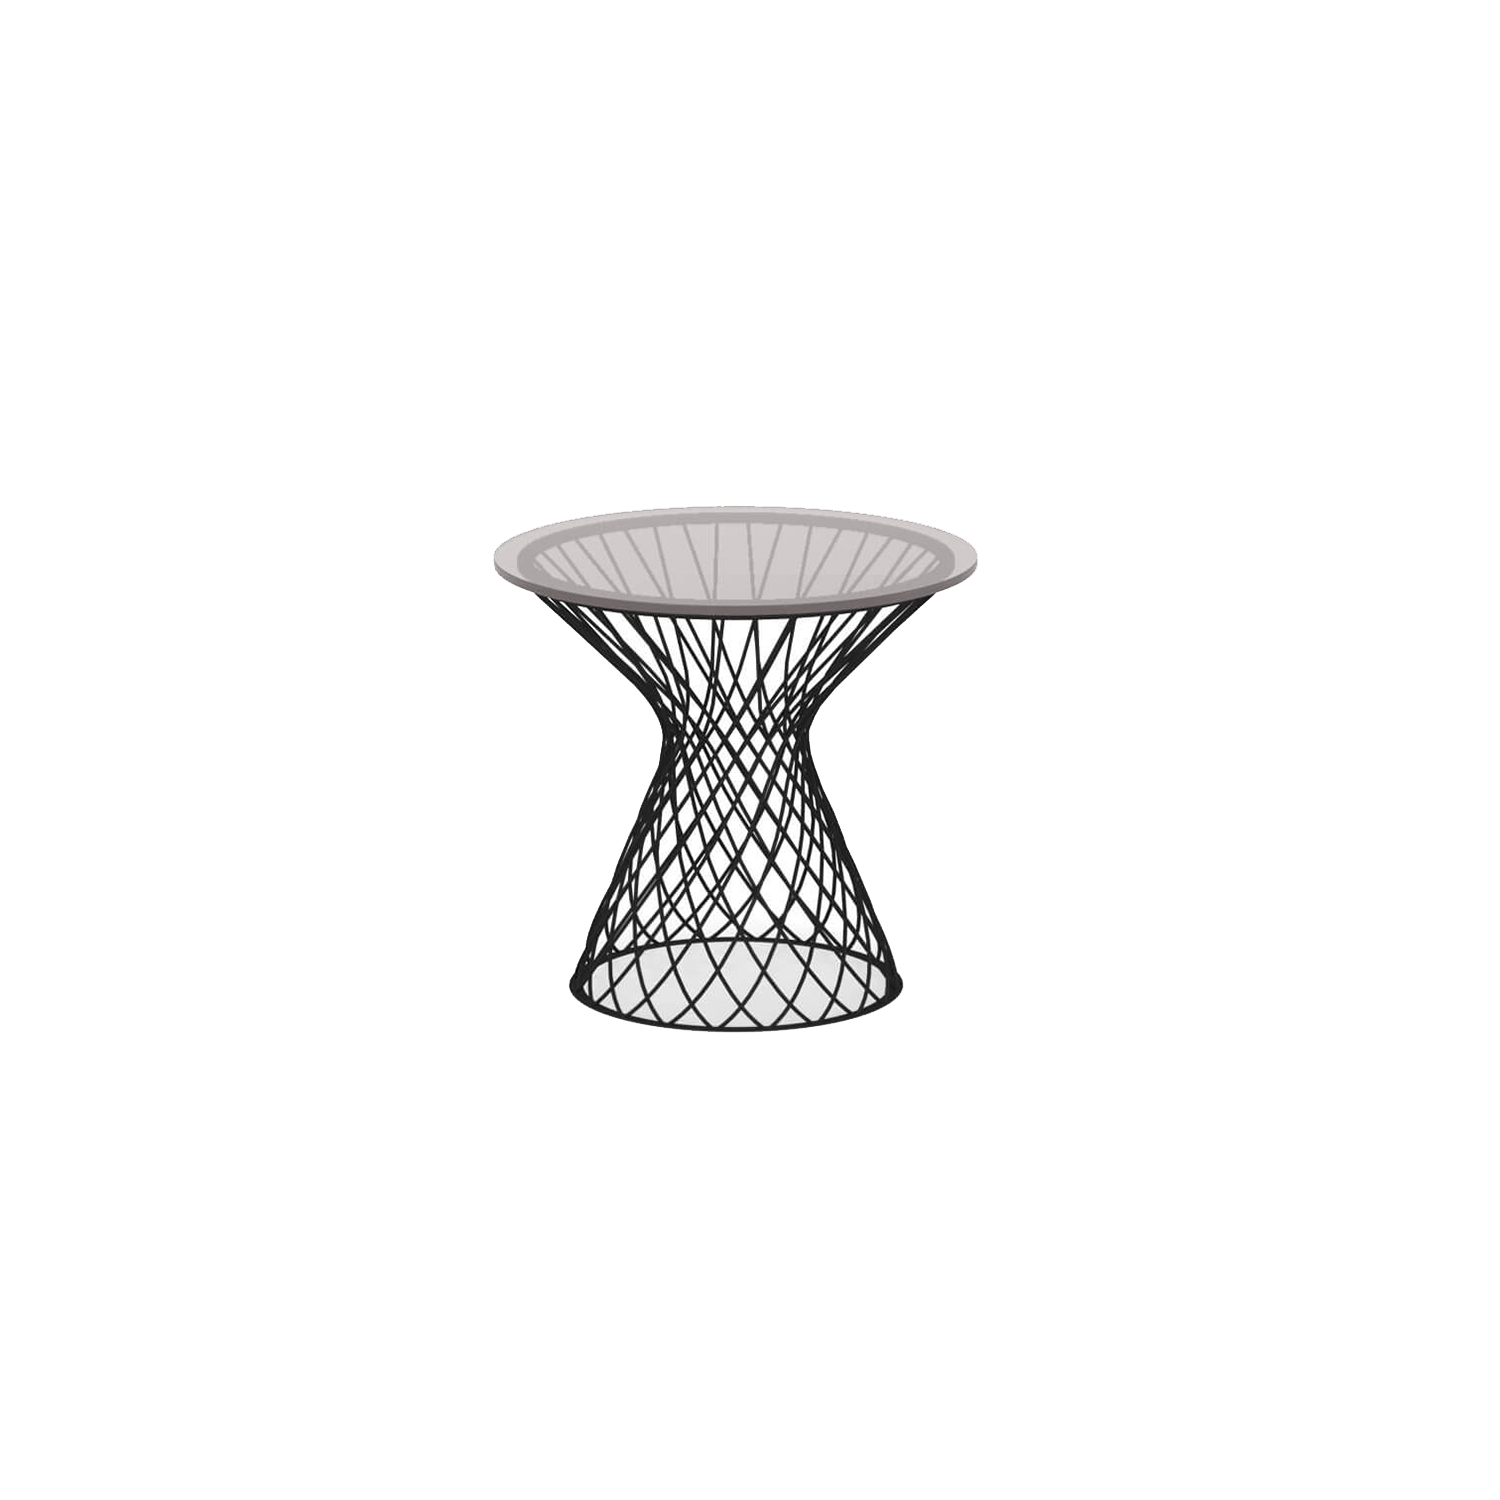 Heaven Round Coffee Table - <p>The idea underlying the Heaven project is that of lightness derived from forms emerging from hollow spaces bordered by interweaving lines. The thin, woven steel frame is the distinctive feature of a collection marked by well-proportioned lines and overall harmony. Steel chairs paired with transparent glass tops lighten the table surfaces, lending them an intangible quality.</p>  | Matter of Stuff